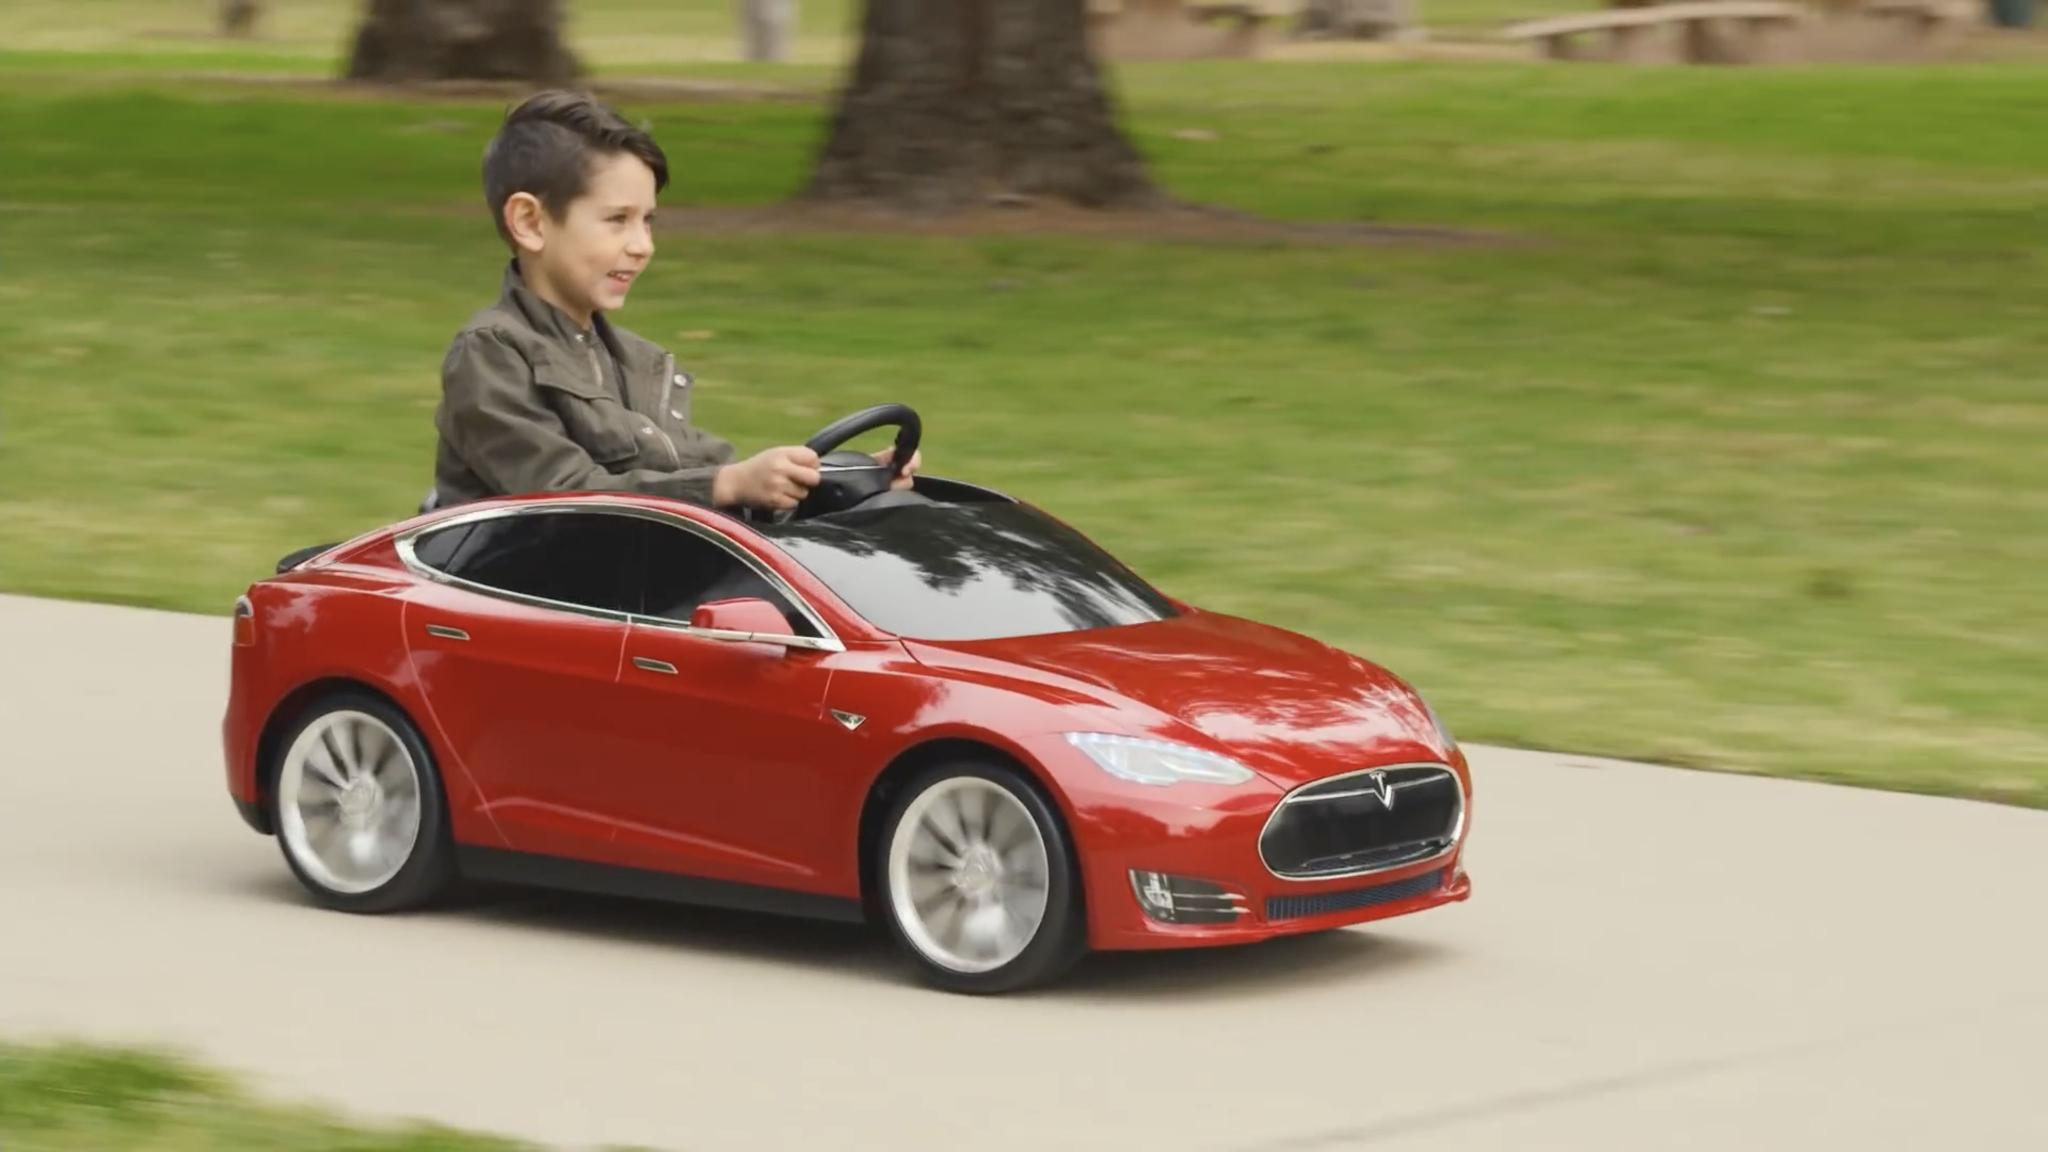 How Much Does A Used Tesla Car Cost